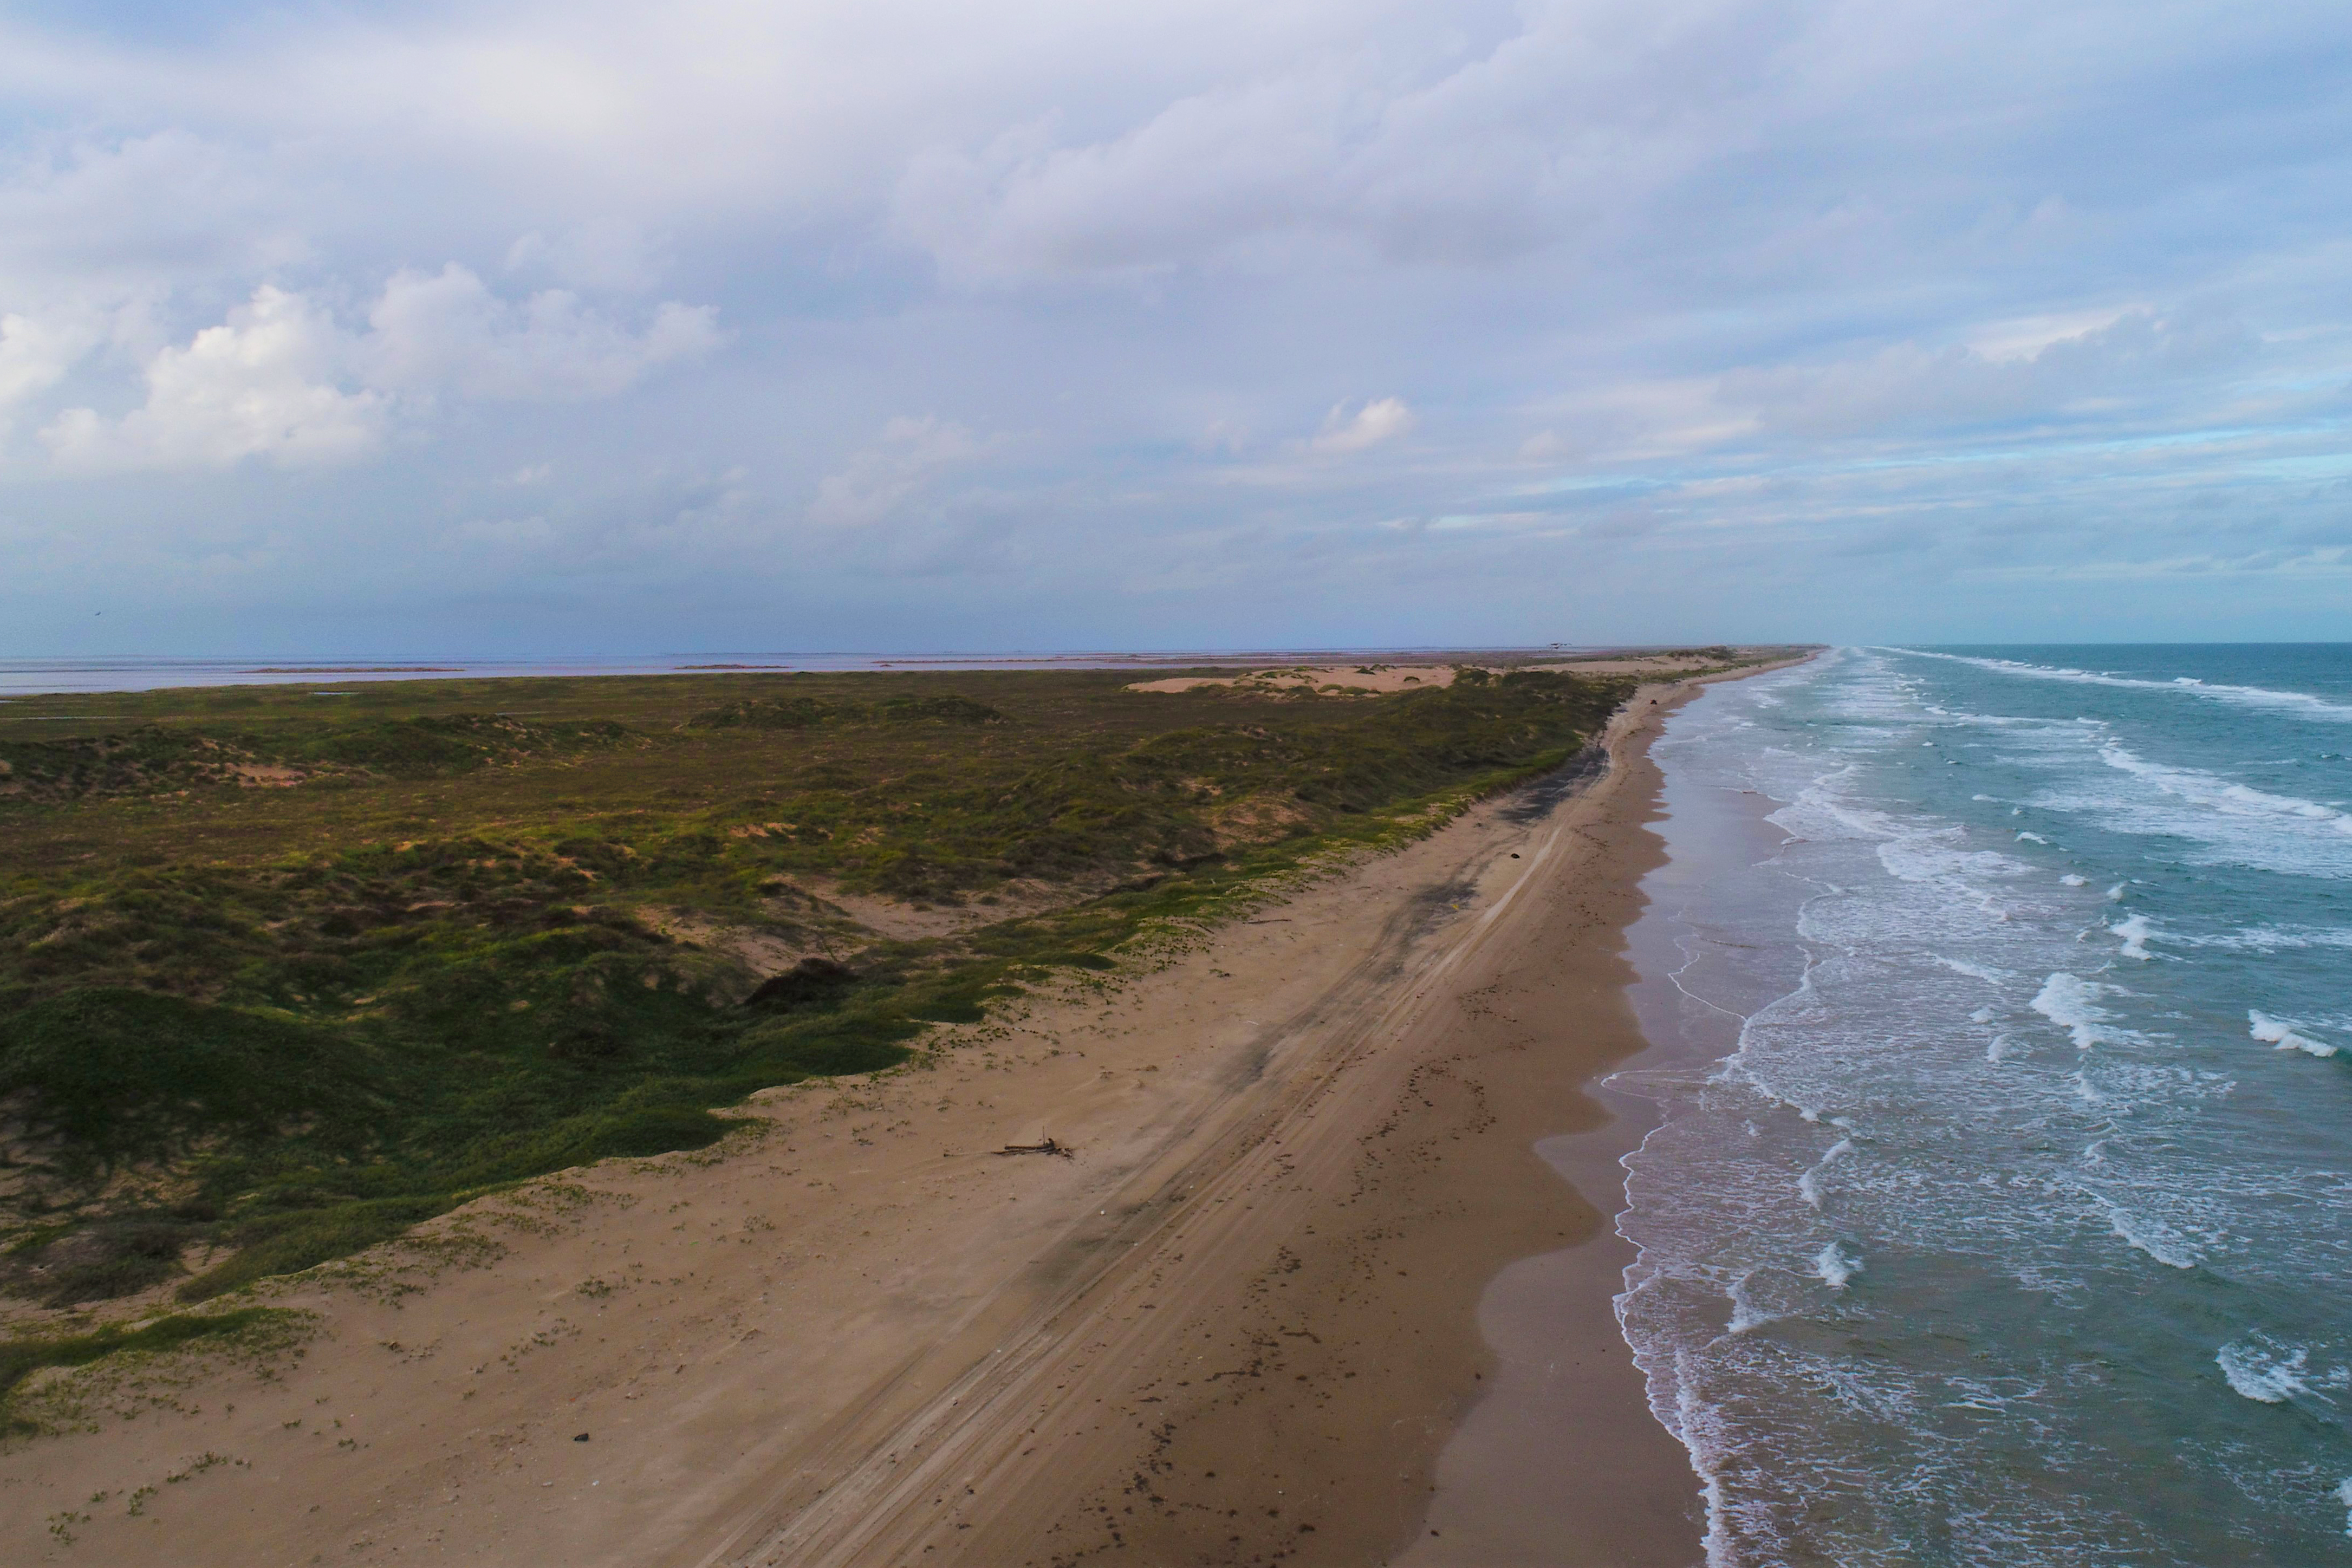 Aerial view of the Texas coastline, with vegetated dunes and sandy beach, on the Gulf of Mexico.